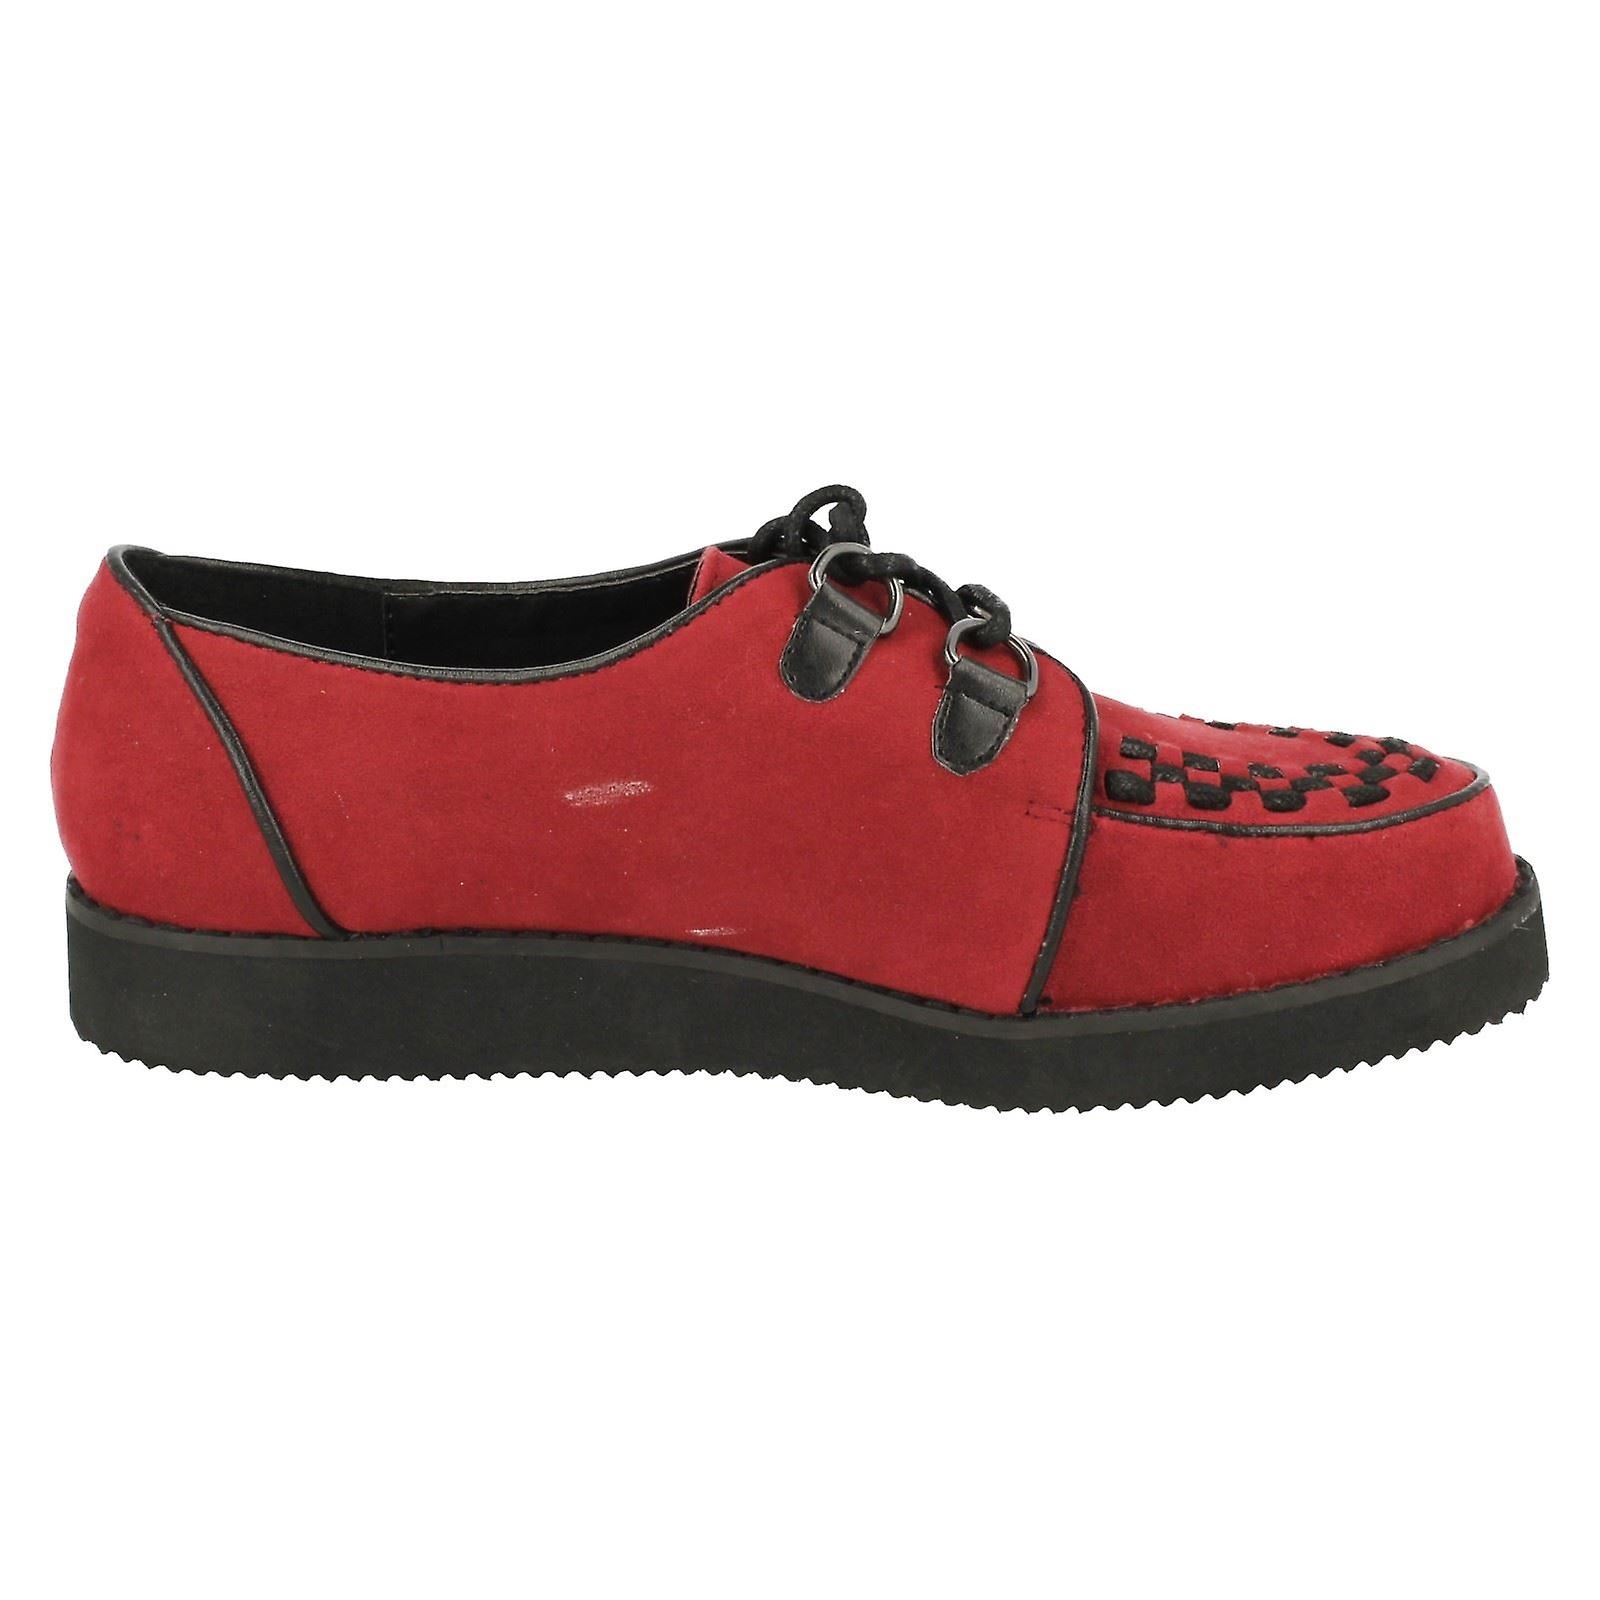 Ladies Spot On Chunky Sole Shoes F9568 bMx96